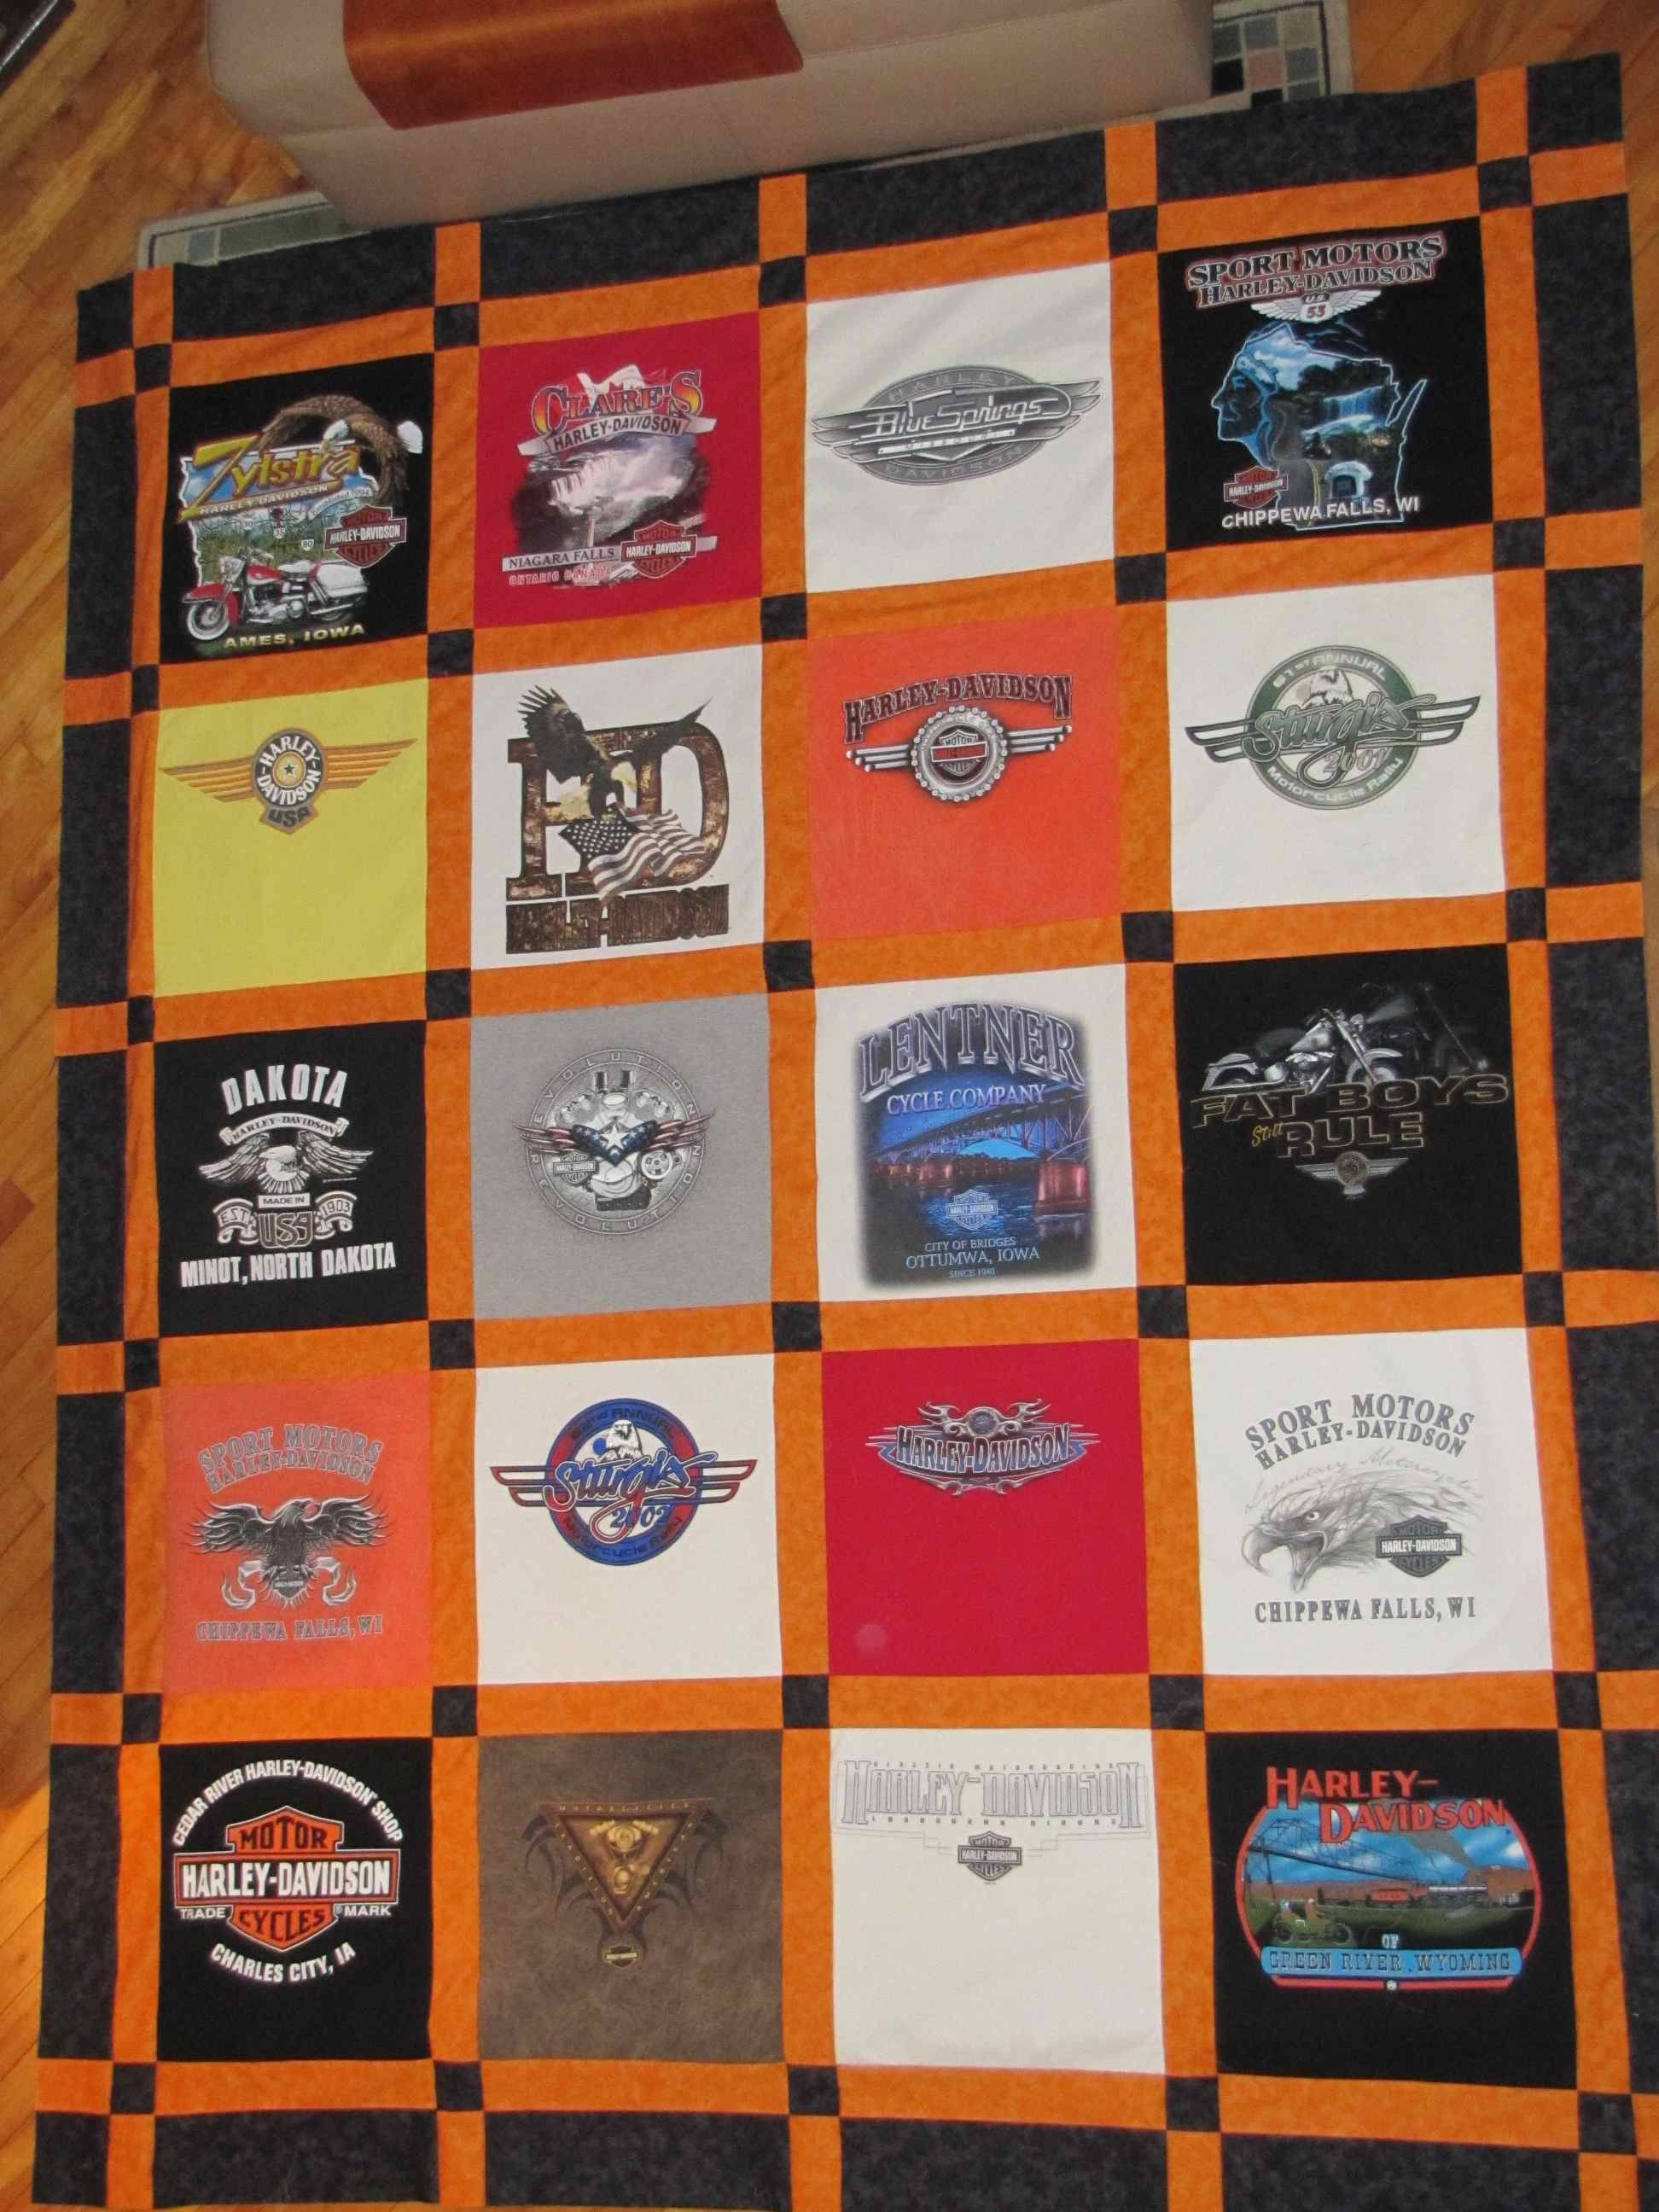 Harley T-Shirt Quilt | Brown Paper Packages Tied up in String ... : running t shirt quilt - Adamdwight.com